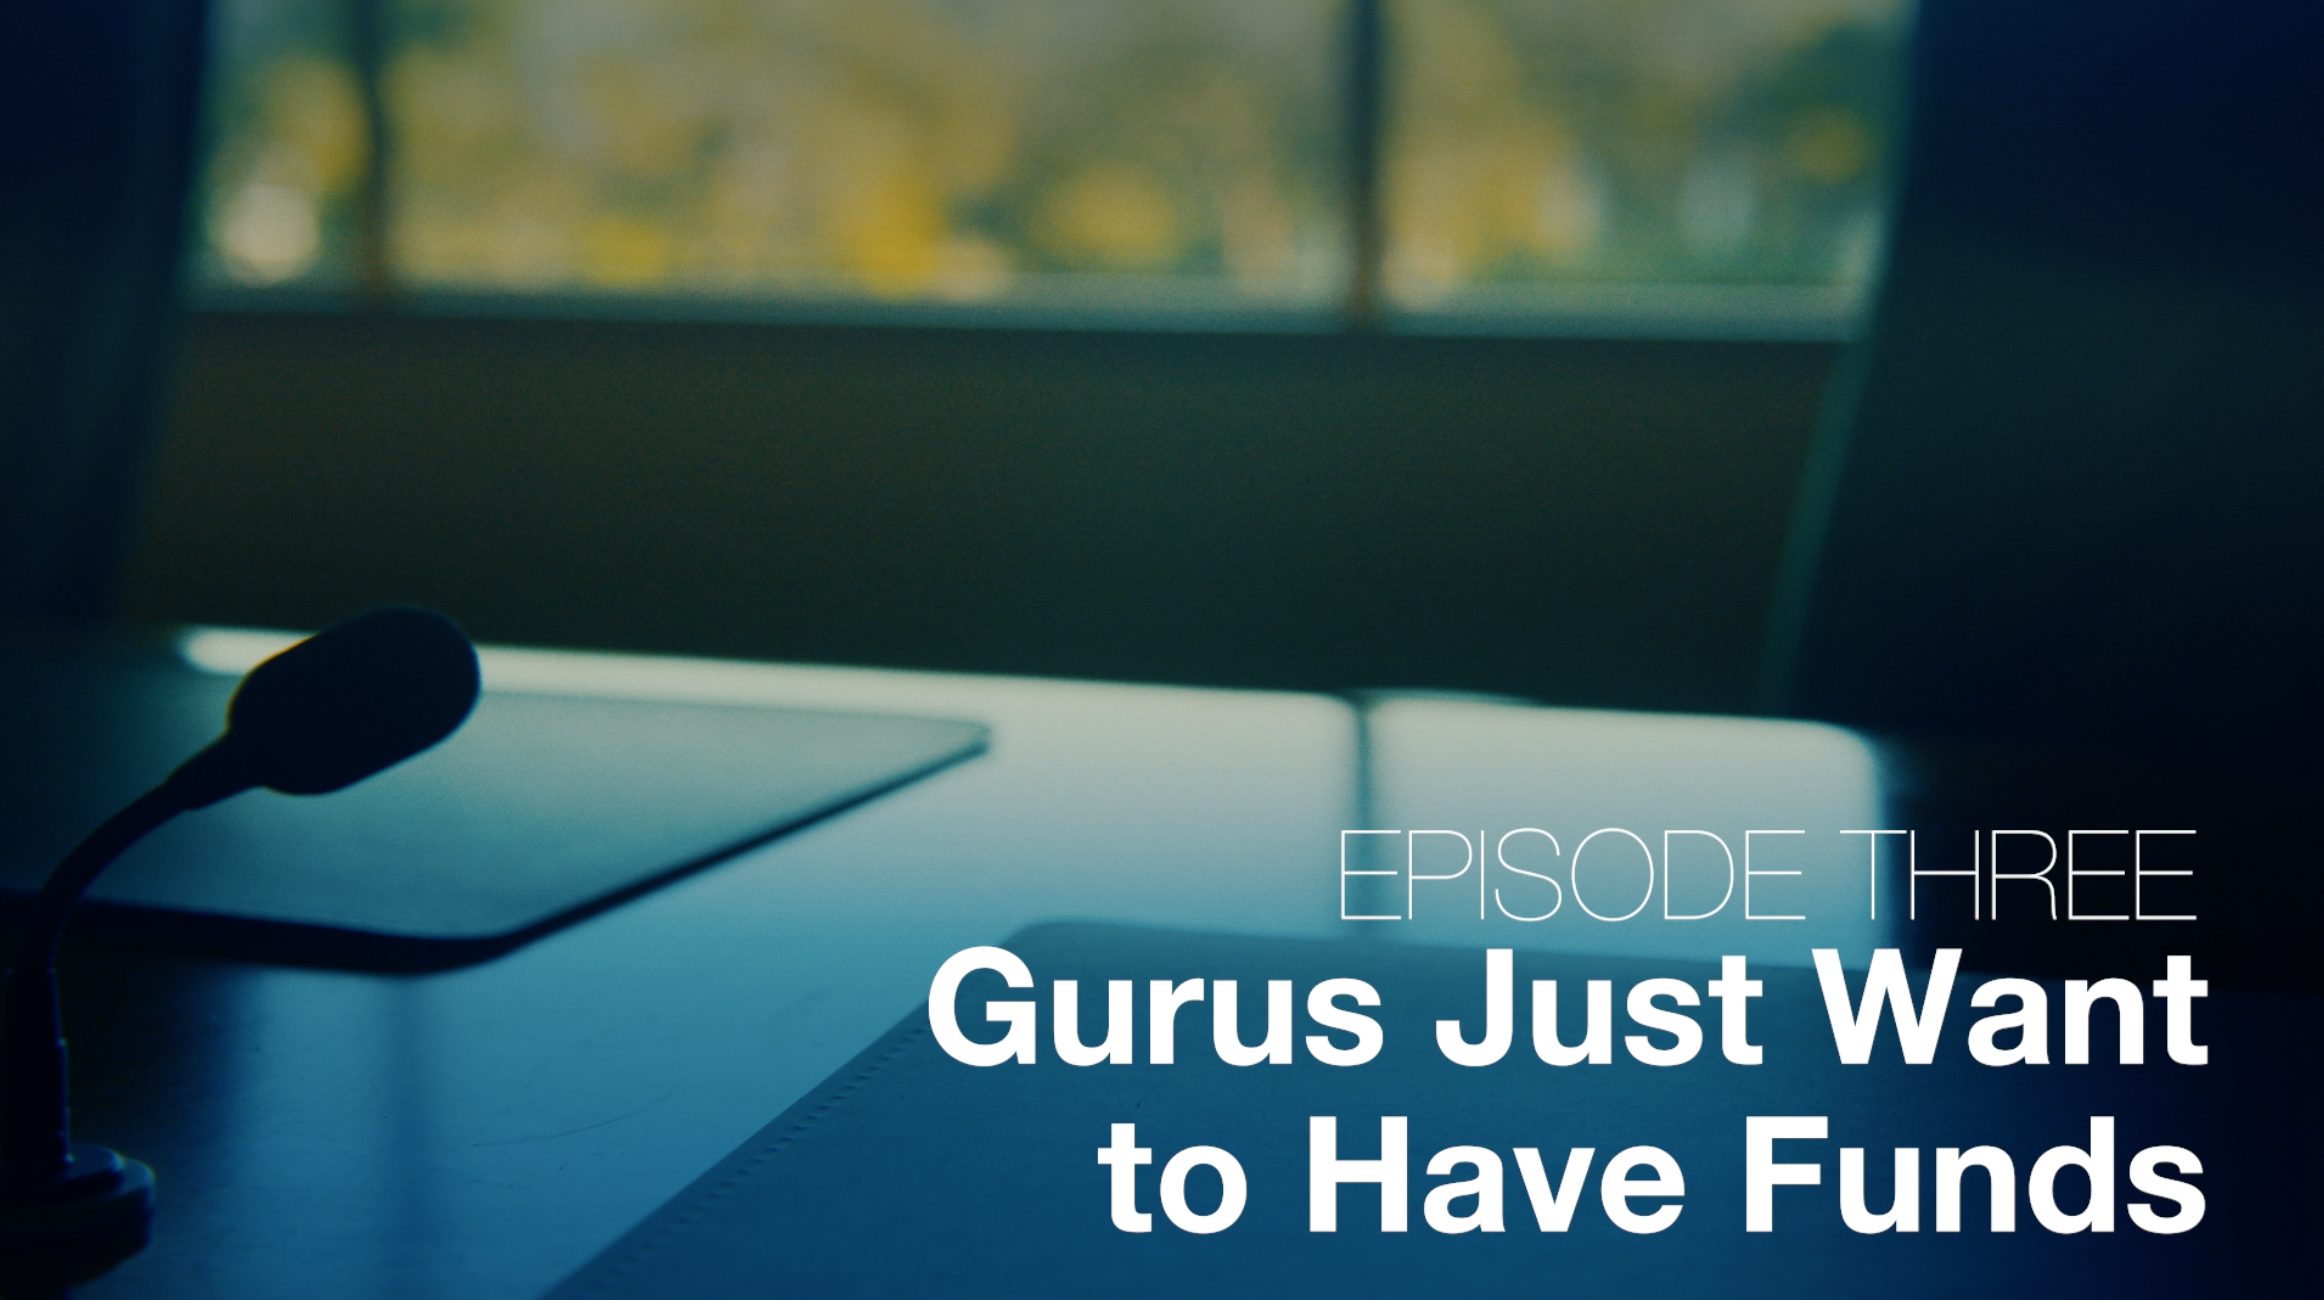 Ep 03 - Gurus Just Want to Have Funds   Bubbleproof